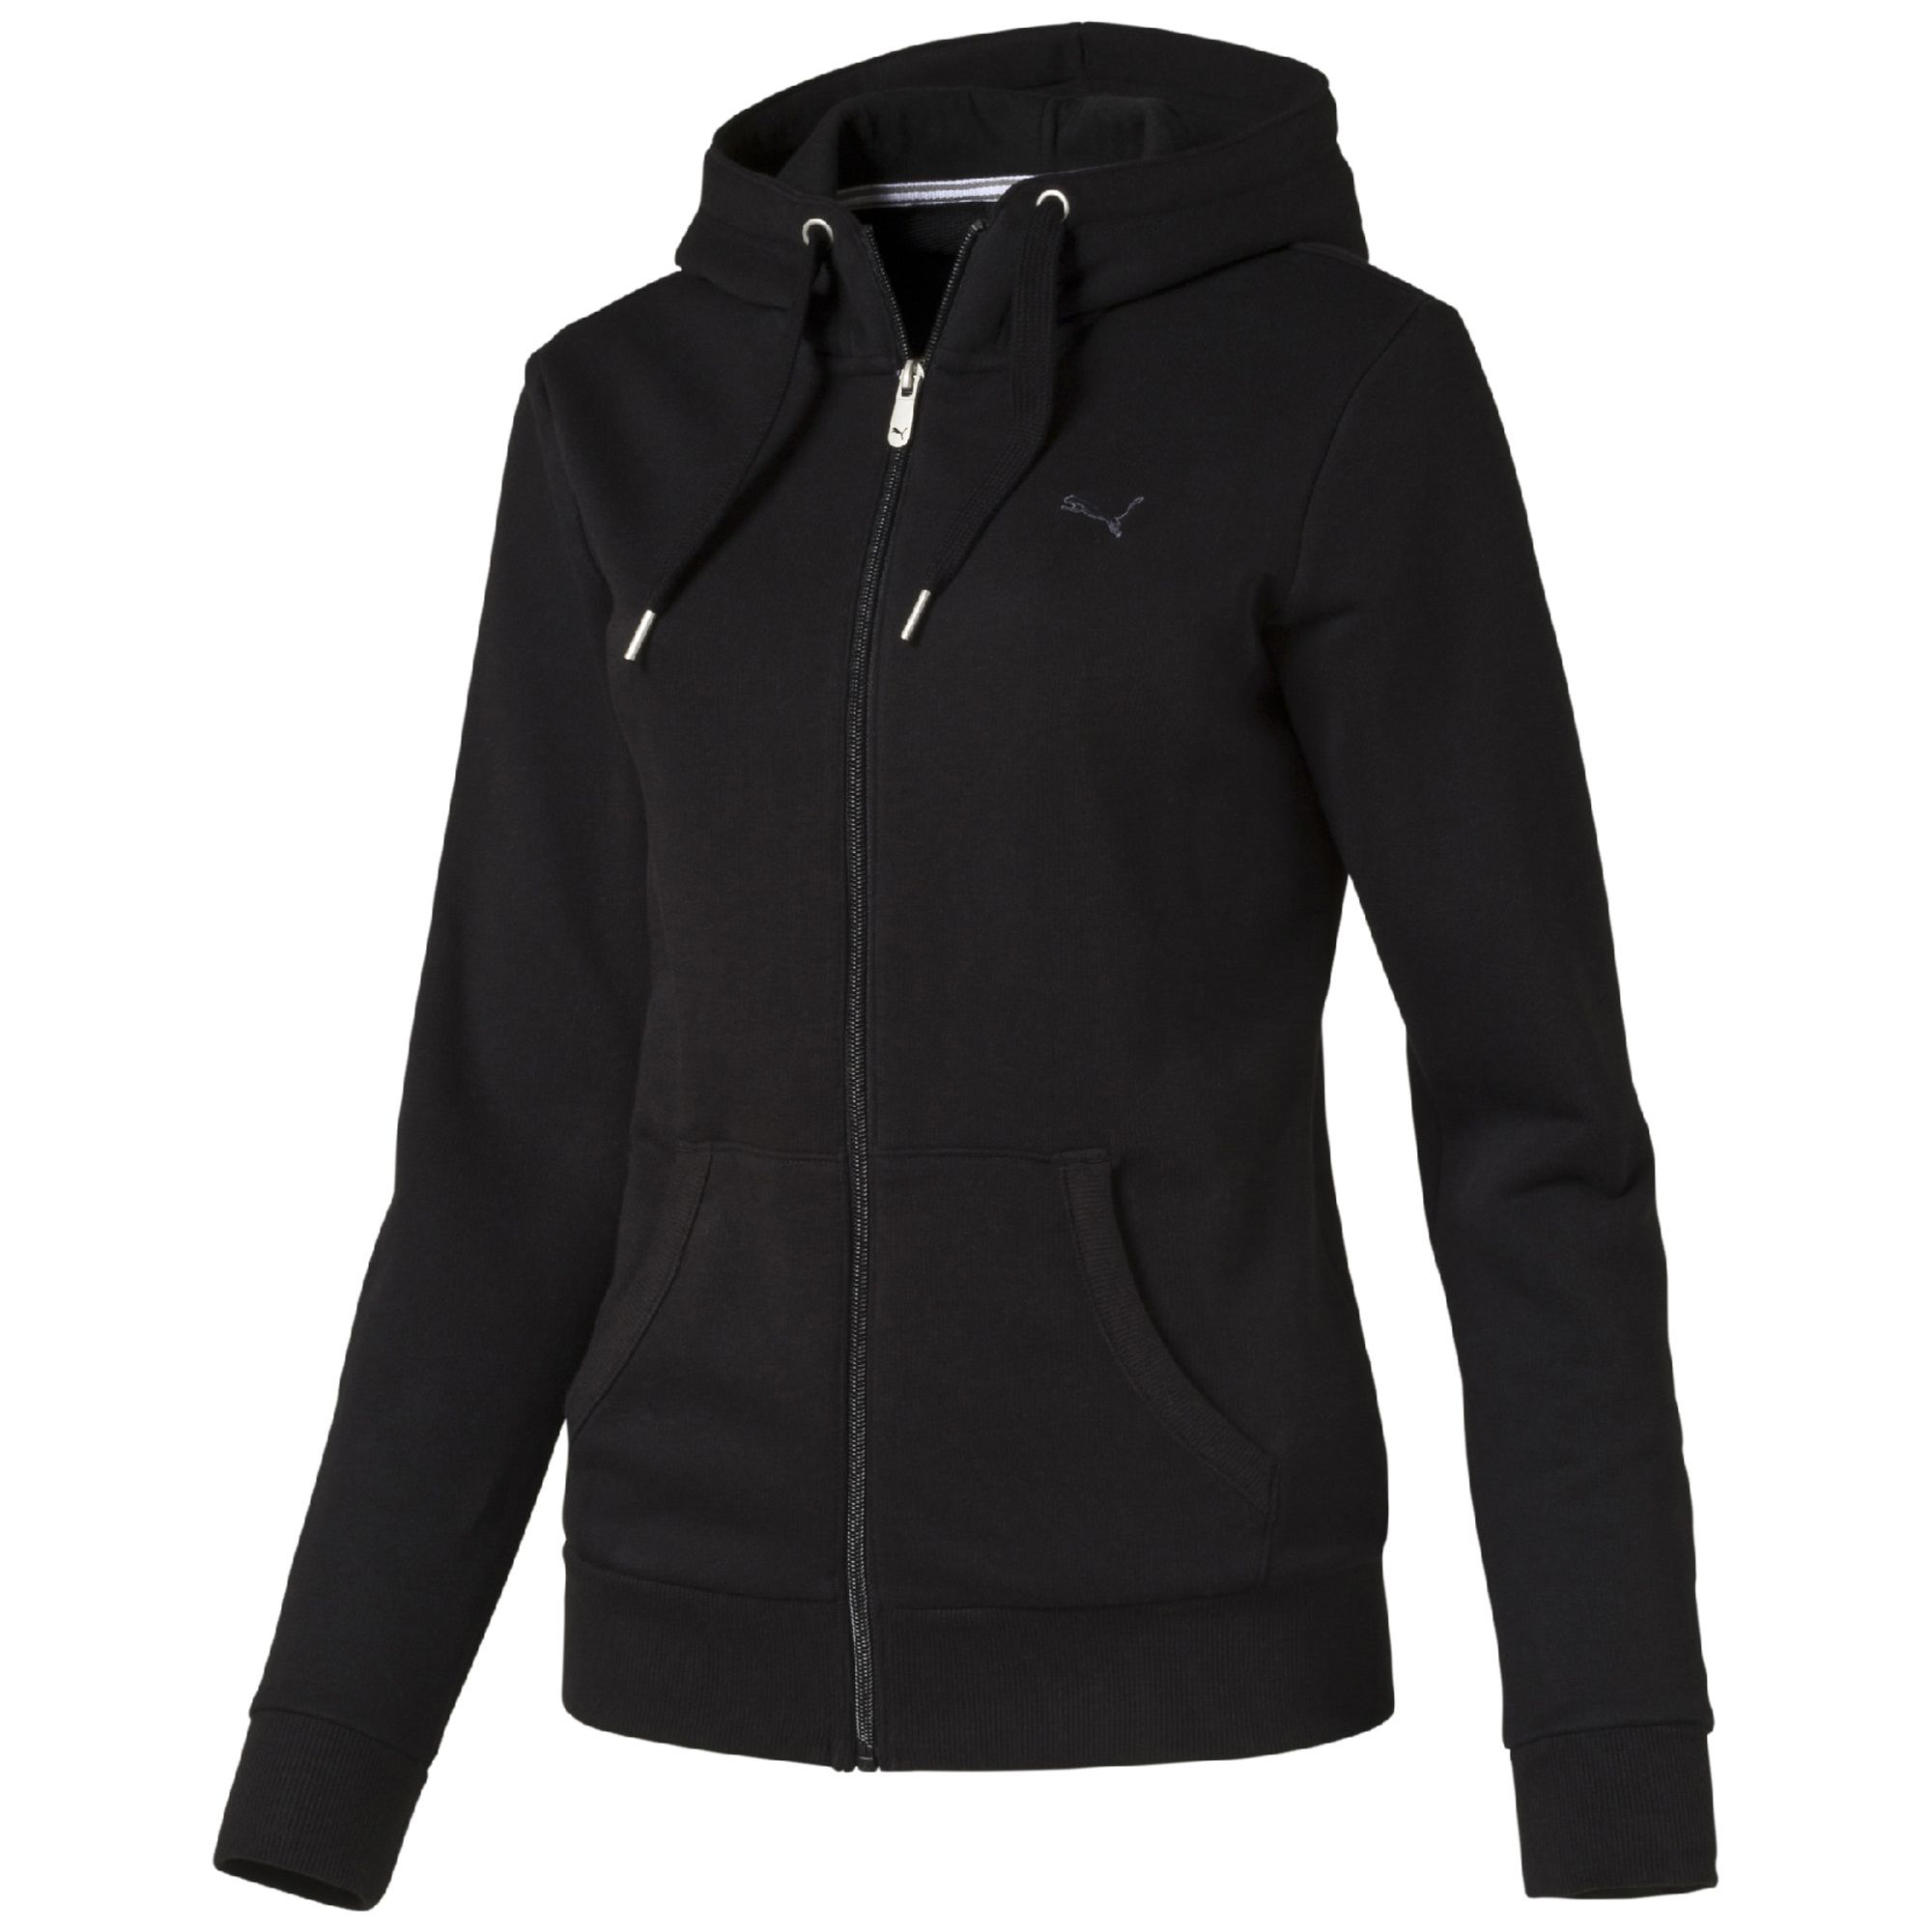 puma fleece kapuzenjacke bekleidung sweatshirt basics damen neu. Black Bedroom Furniture Sets. Home Design Ideas